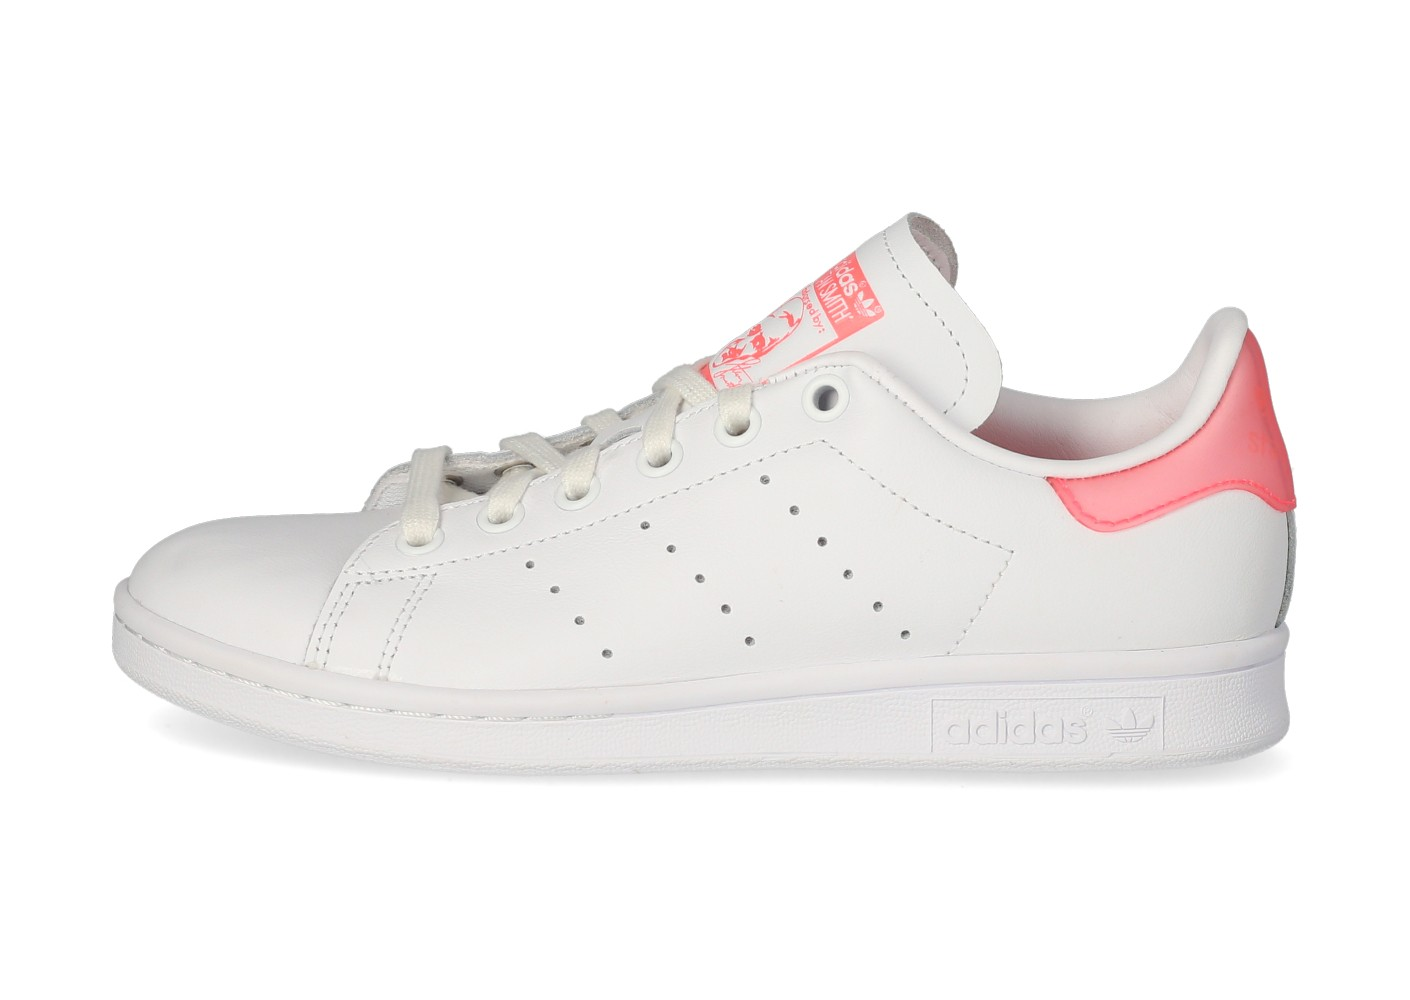 adidas Stan Smith Femme blanche et rose translucide - Chaussures ...